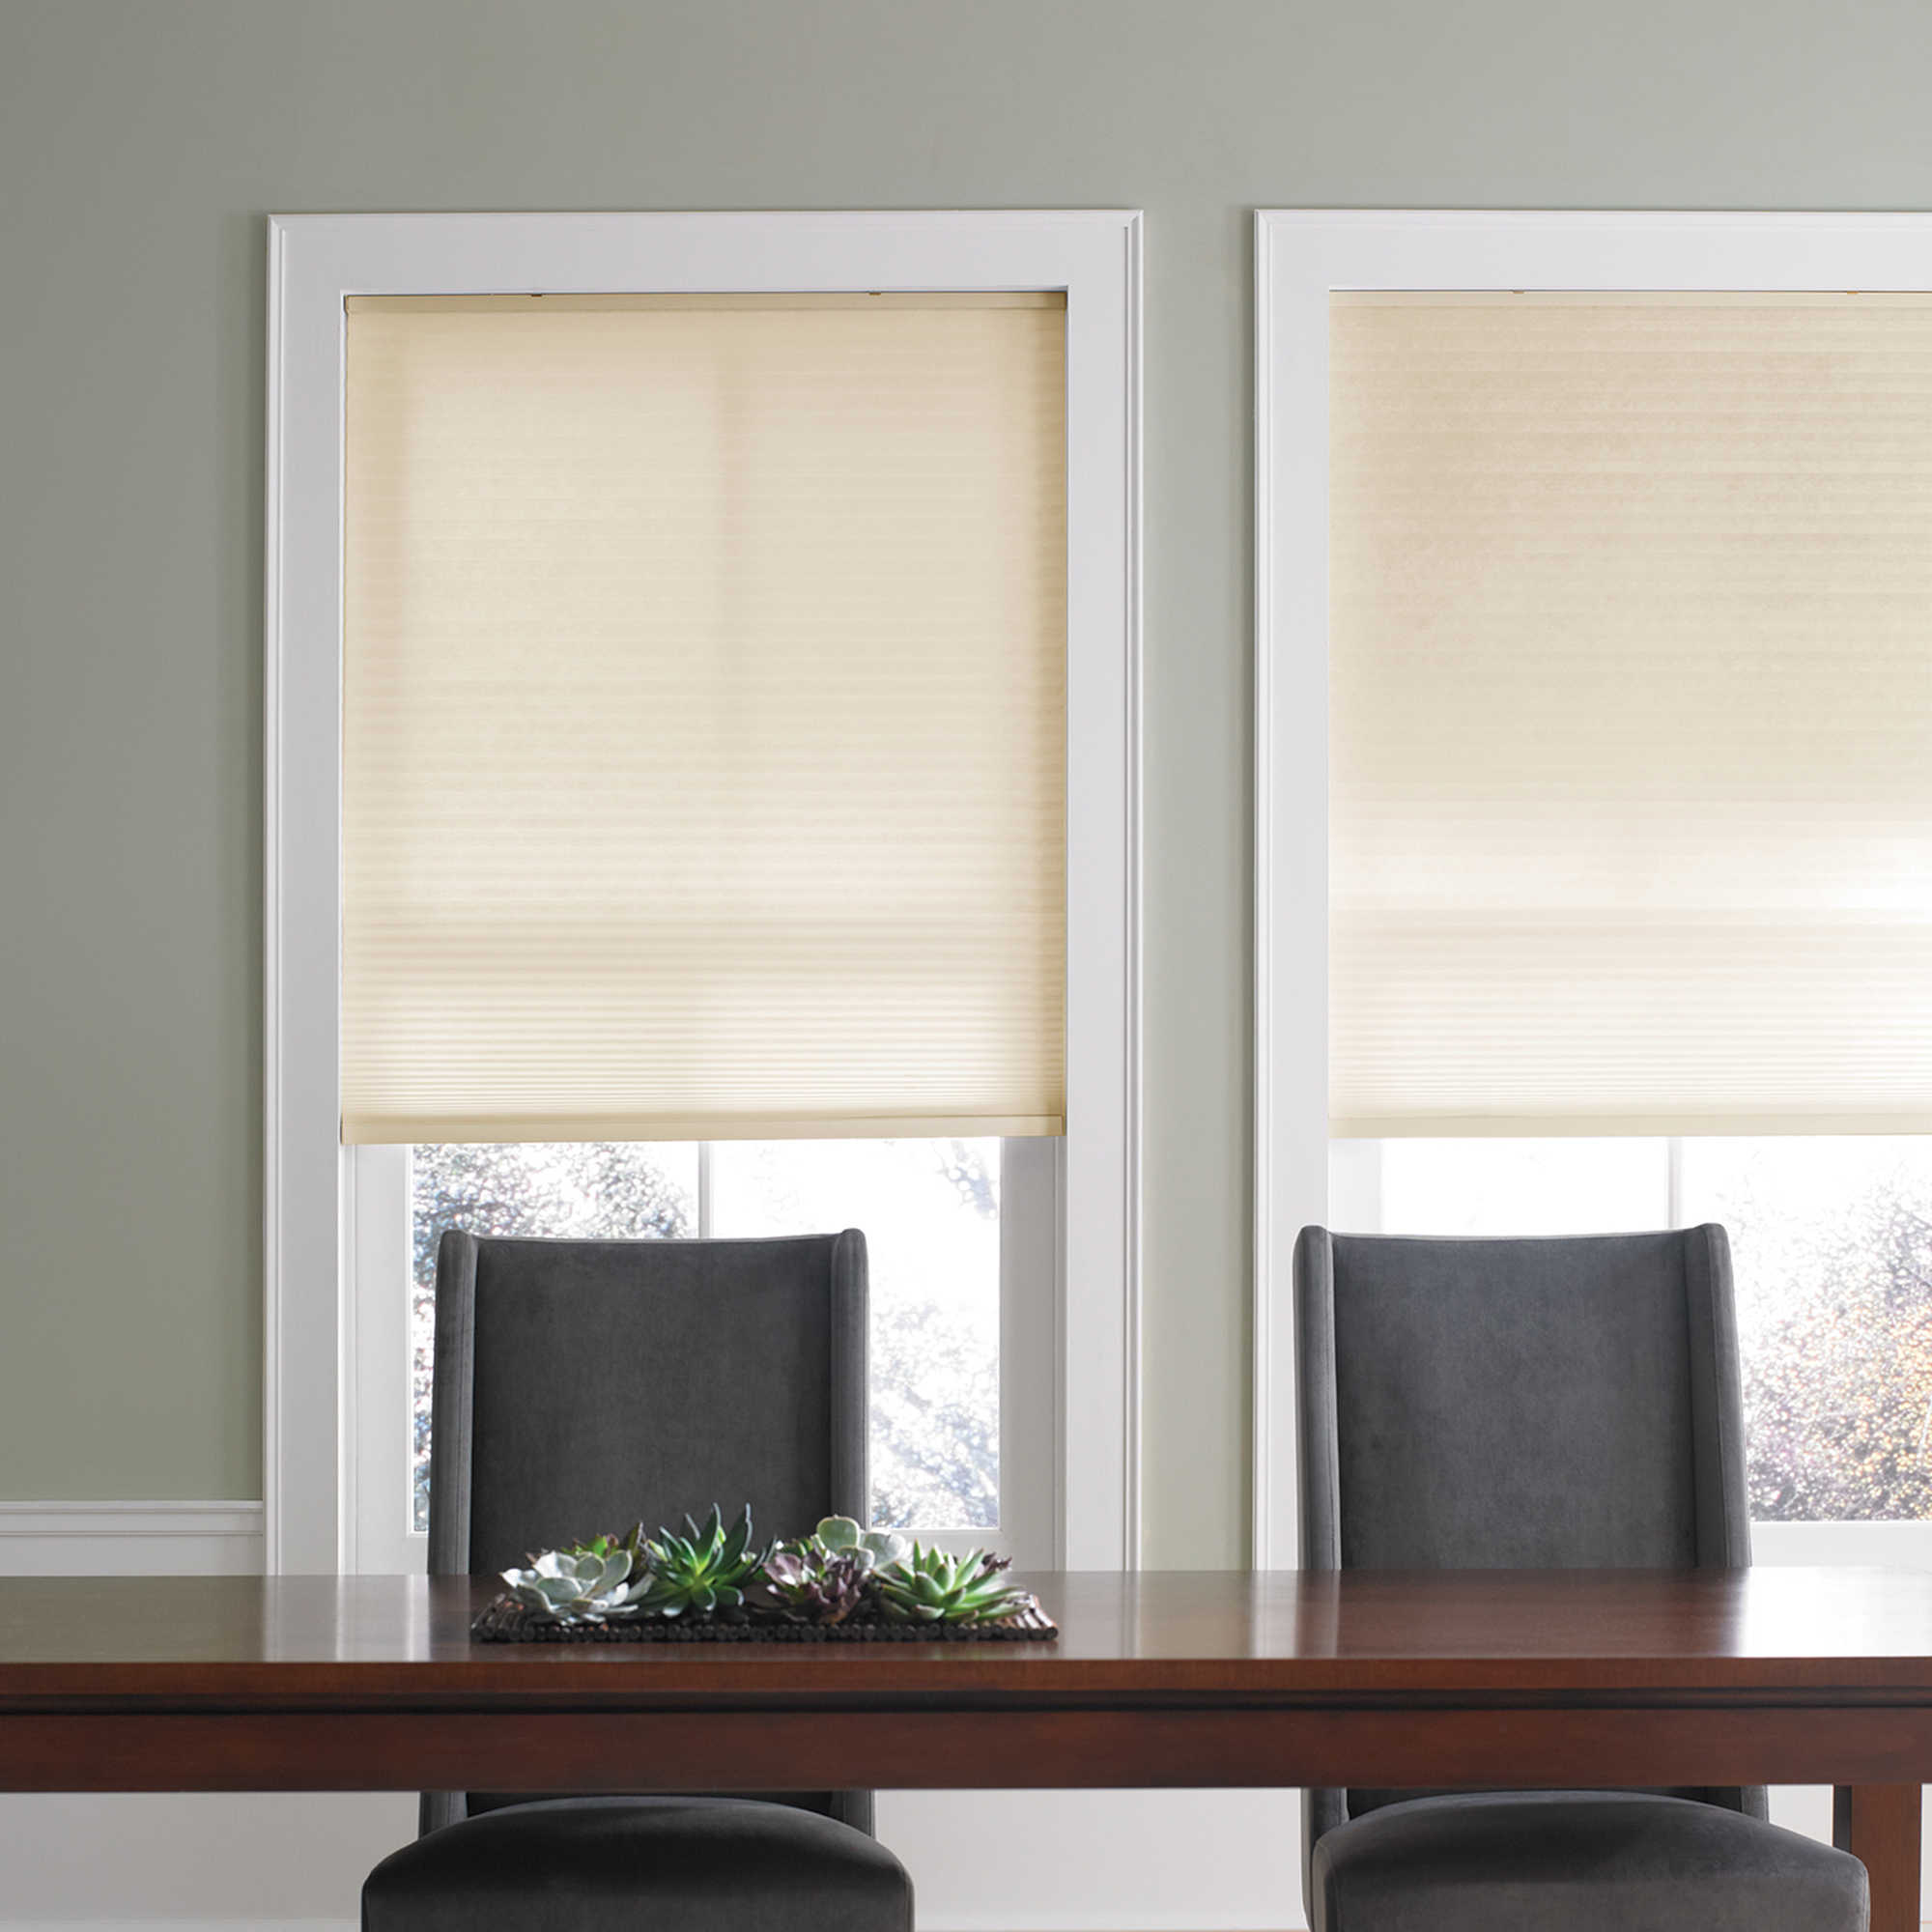 Window blinds for sale window shade price list brands amp review - Real Simple Reg Cordless Cellular Shade